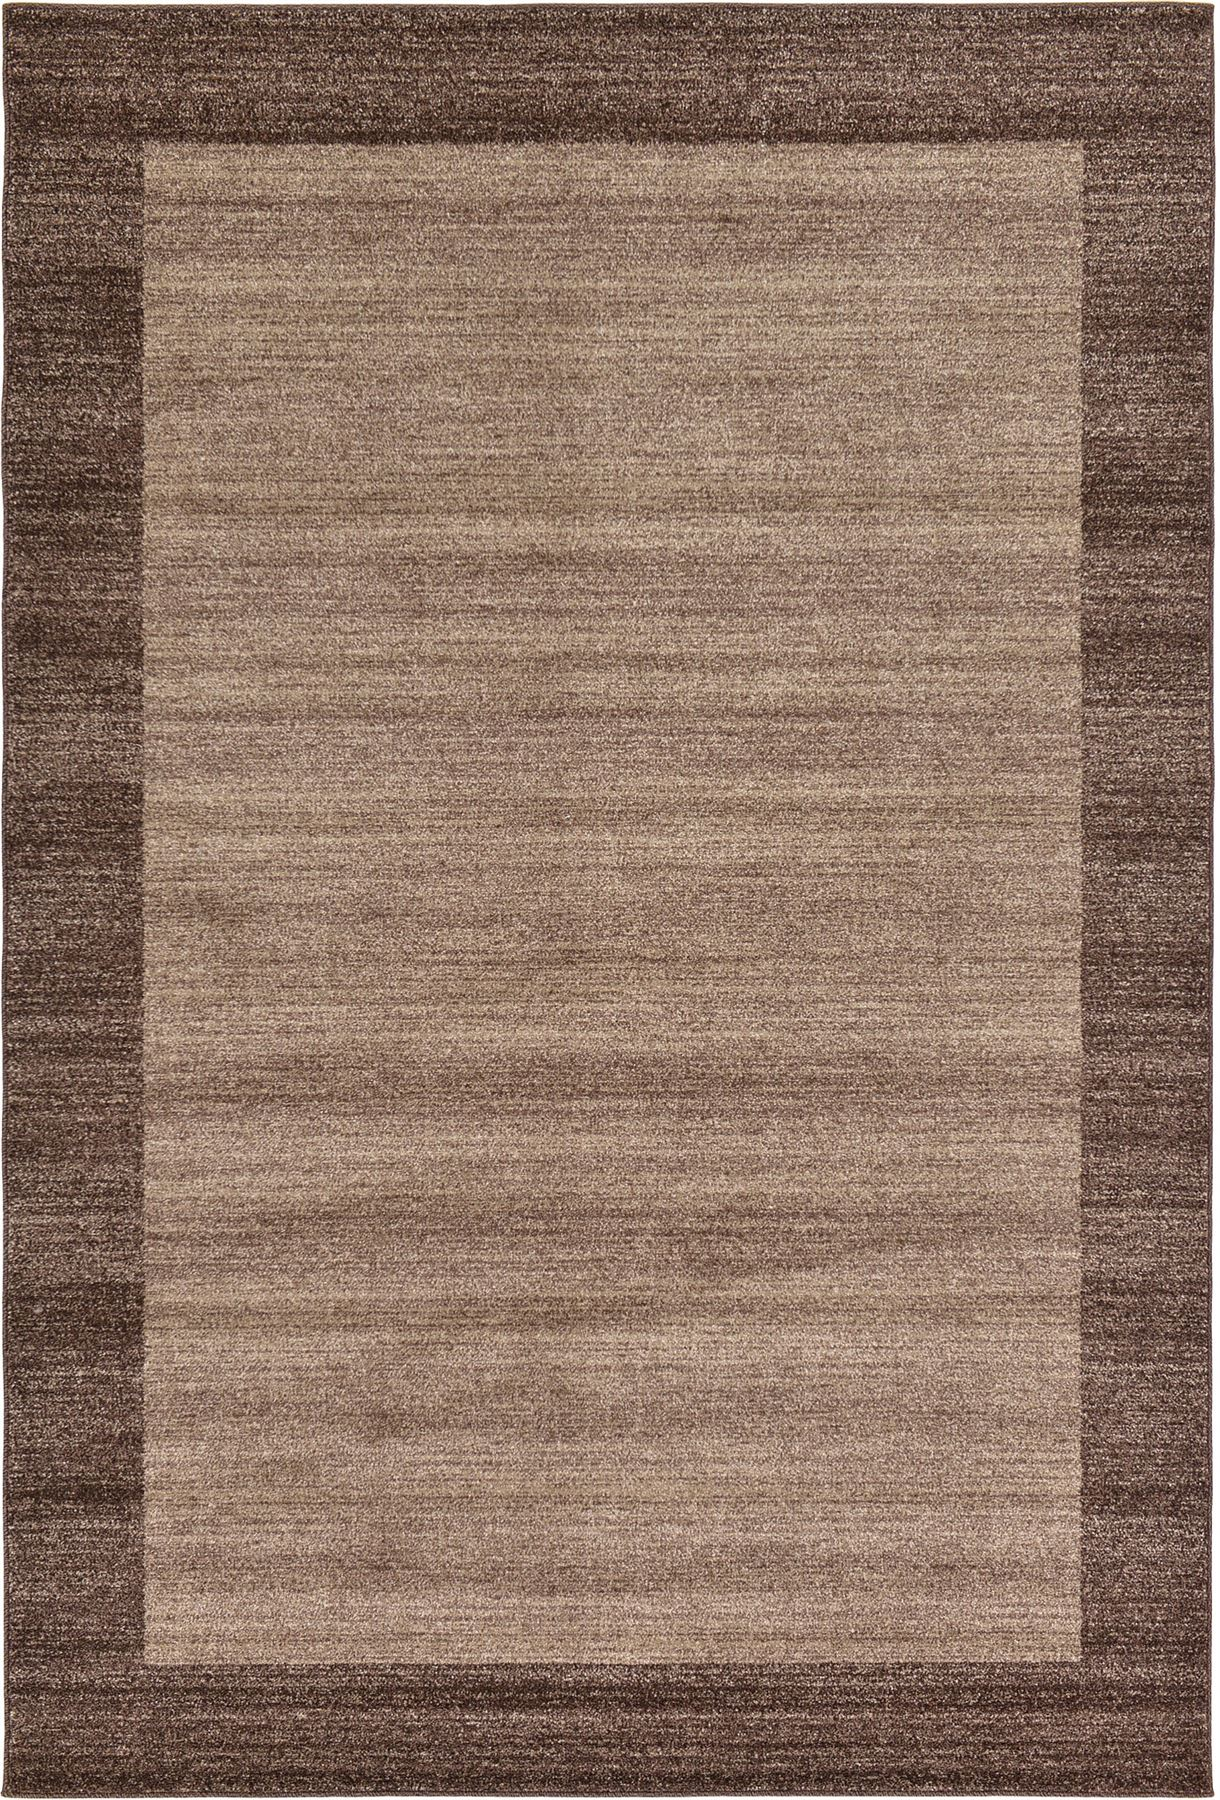 Modern plan rug area rug floor decor contemporary carpets for Modern design area rugs